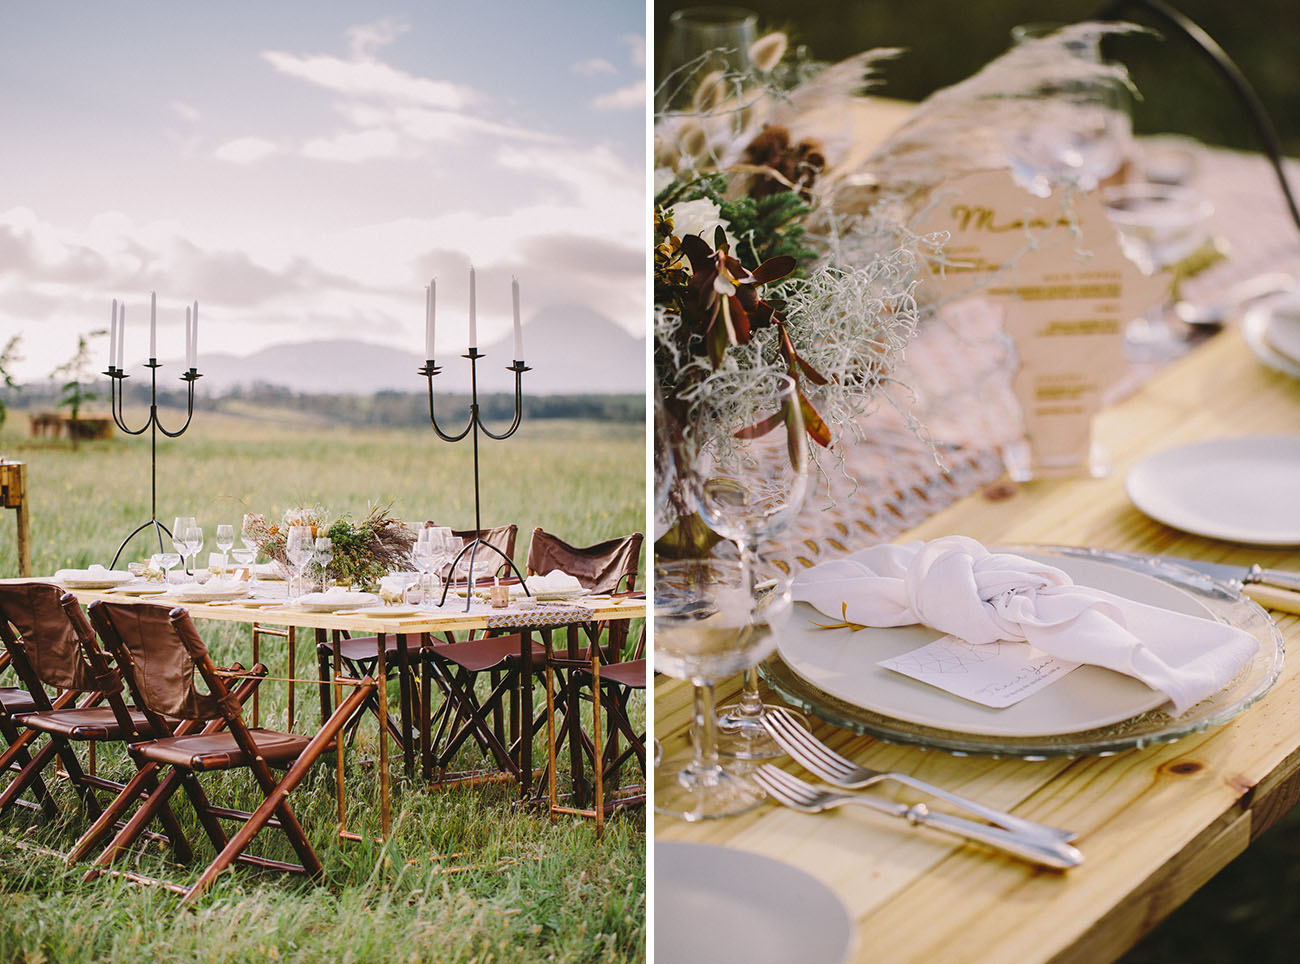 There were leather chairs, and the tablescape was done with clear glass, silver flatware, pampas grass and feathers